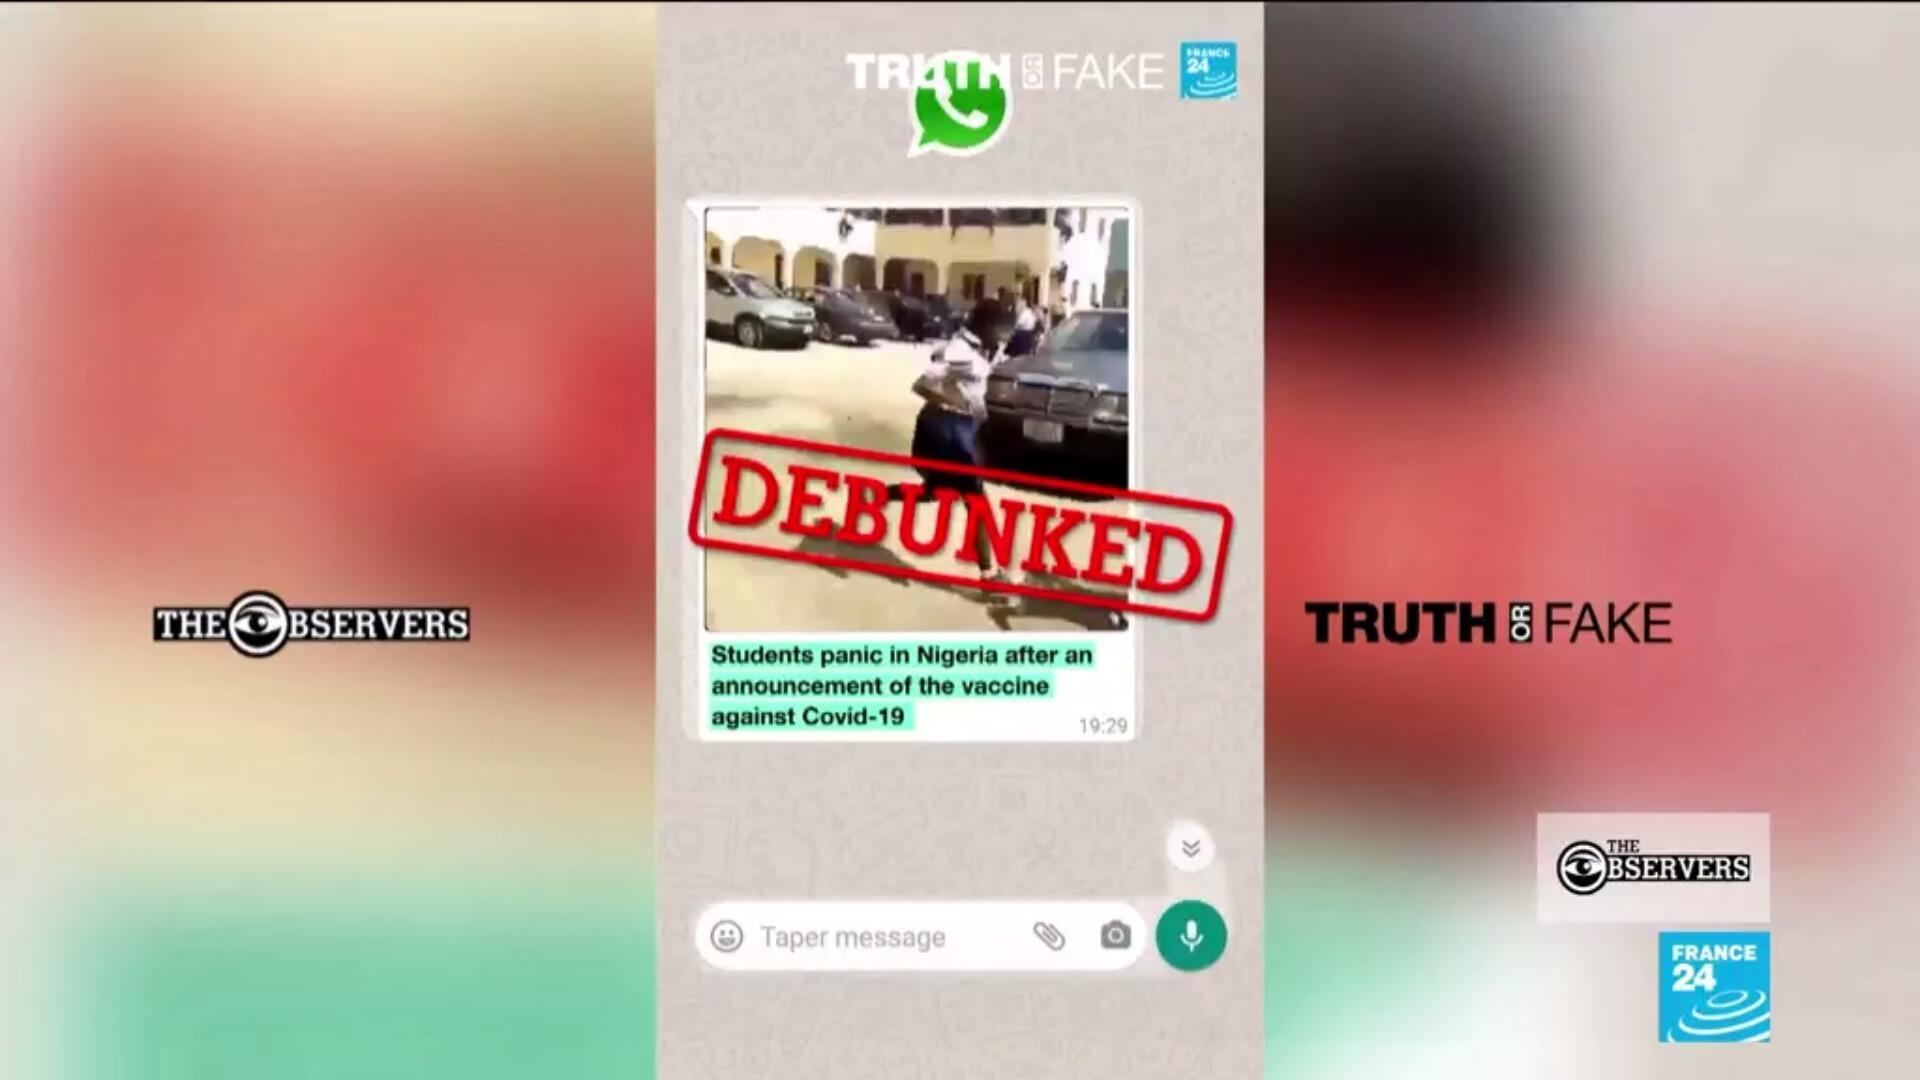 A video circulating on WhatsApp claimed to show Nigerian students running away from getting the Covid-19 vaccine.